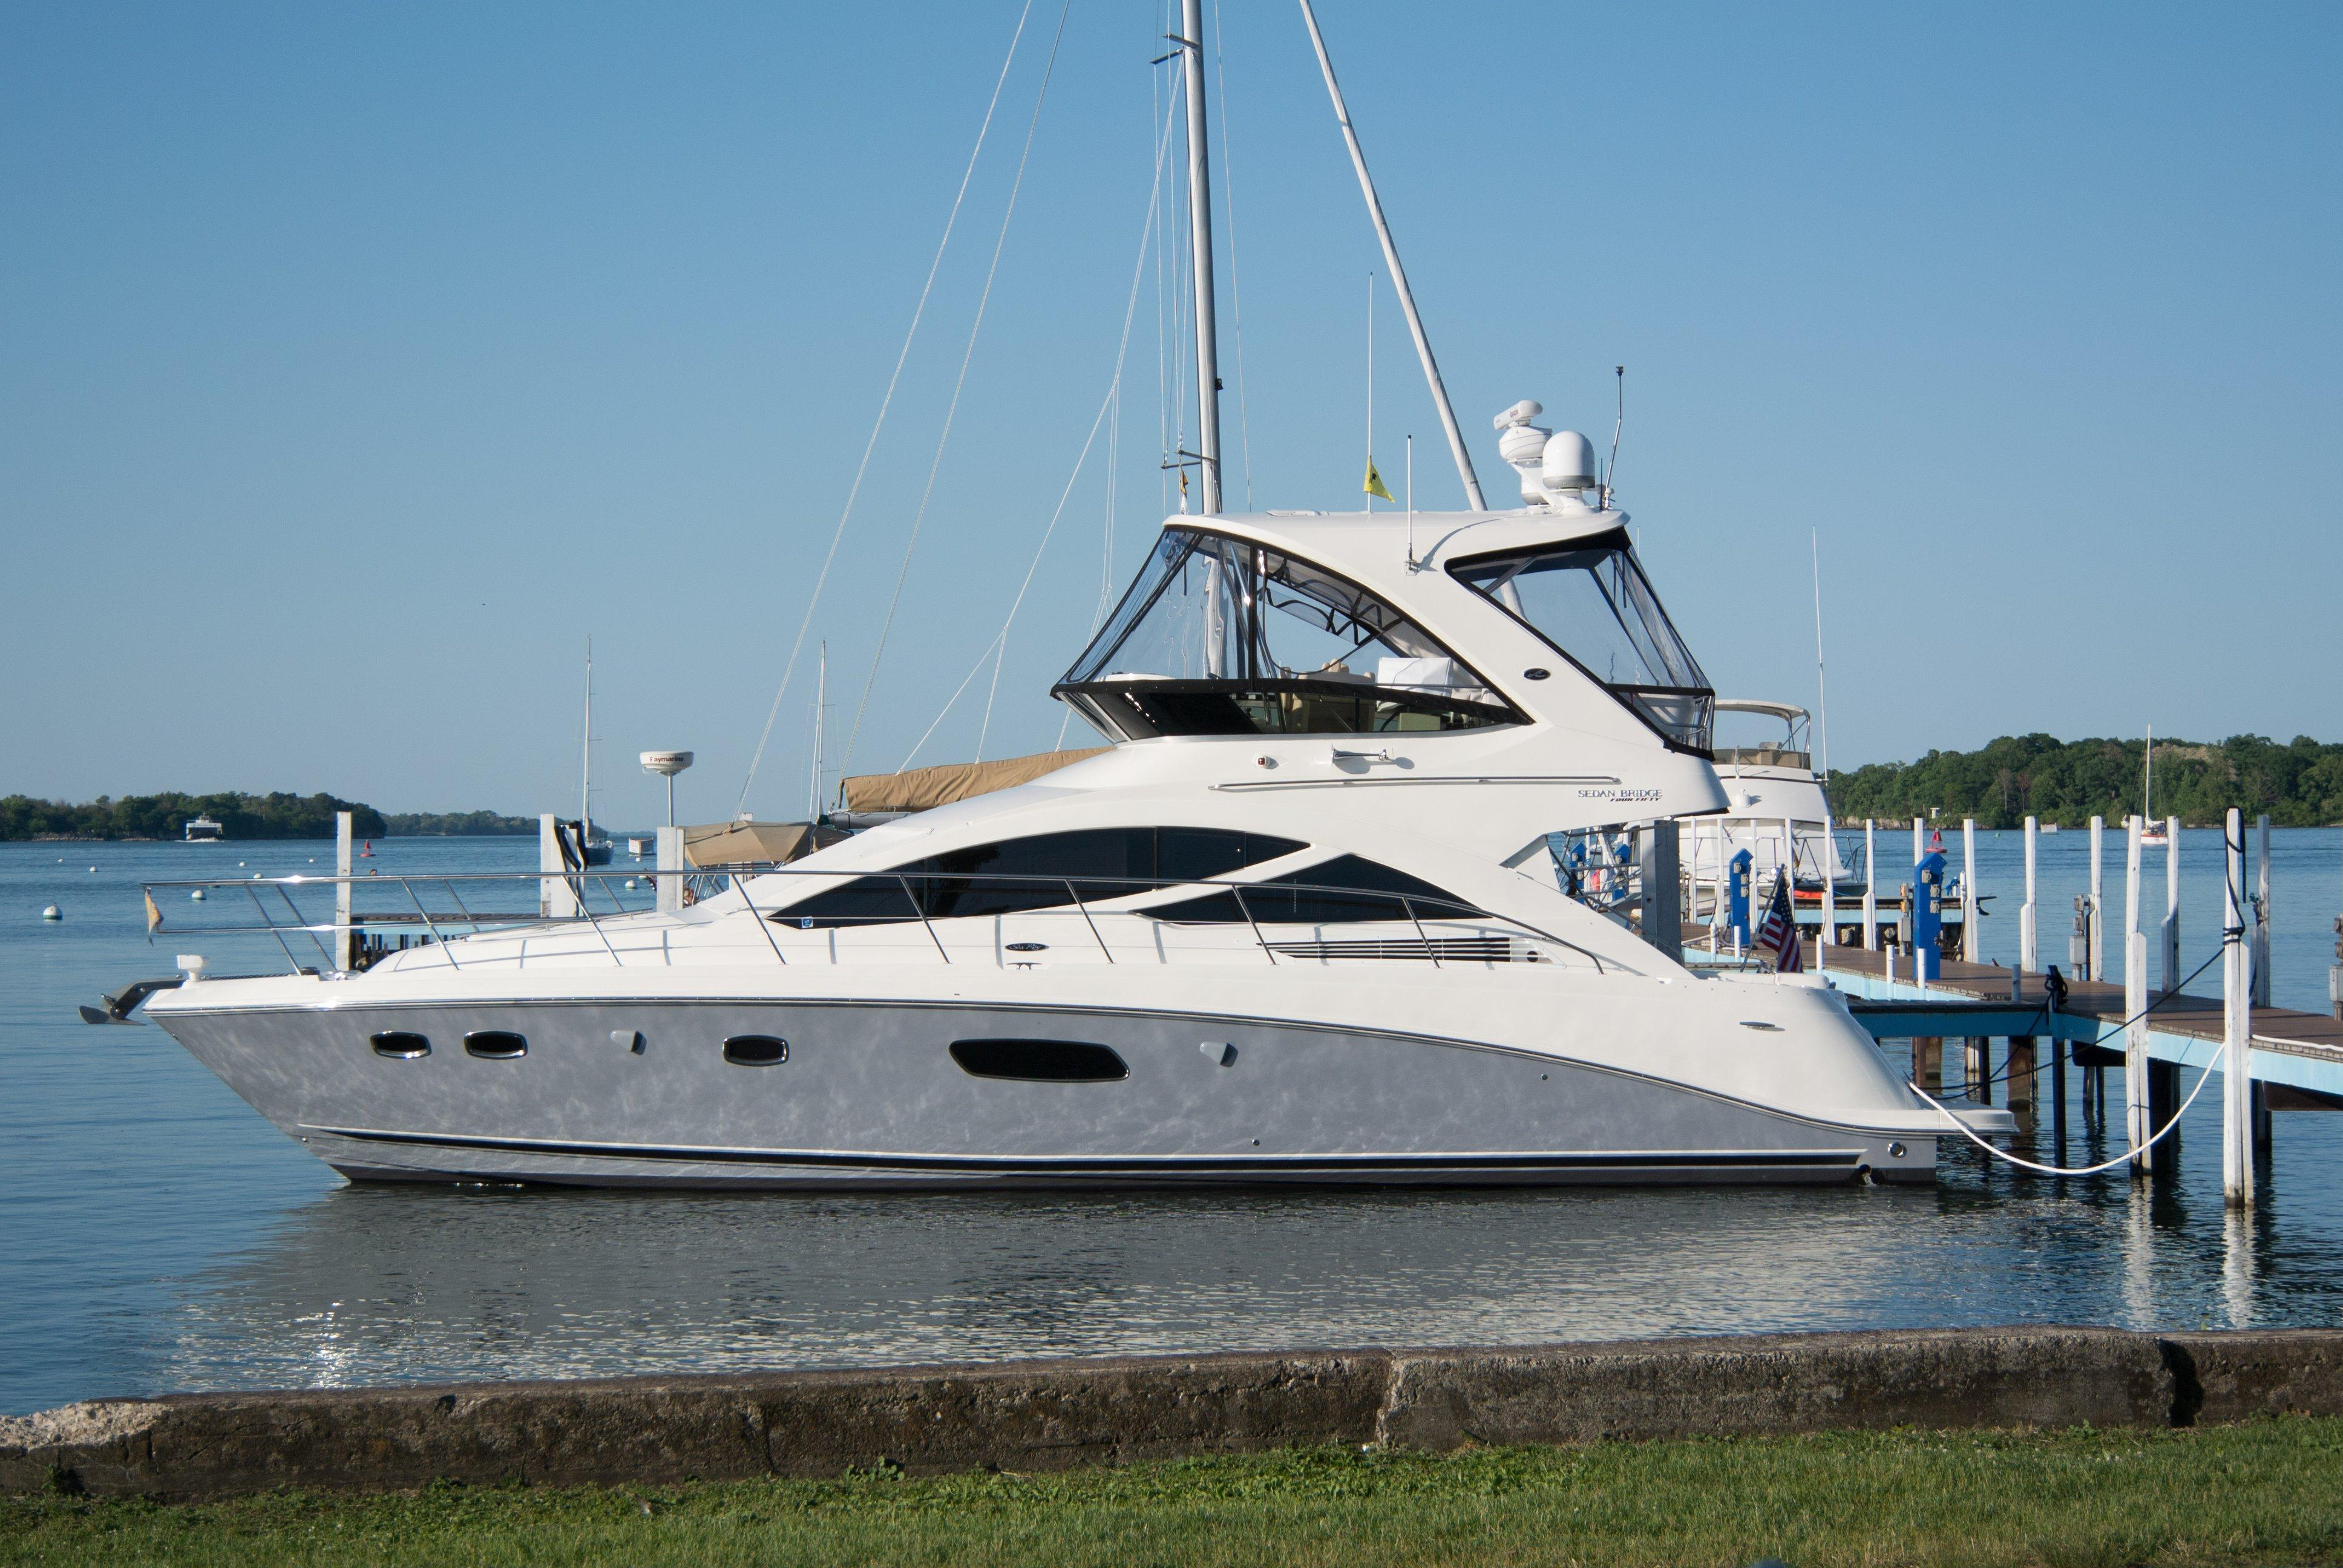 45 Foot Boats For Sale In Oh Boat Listings